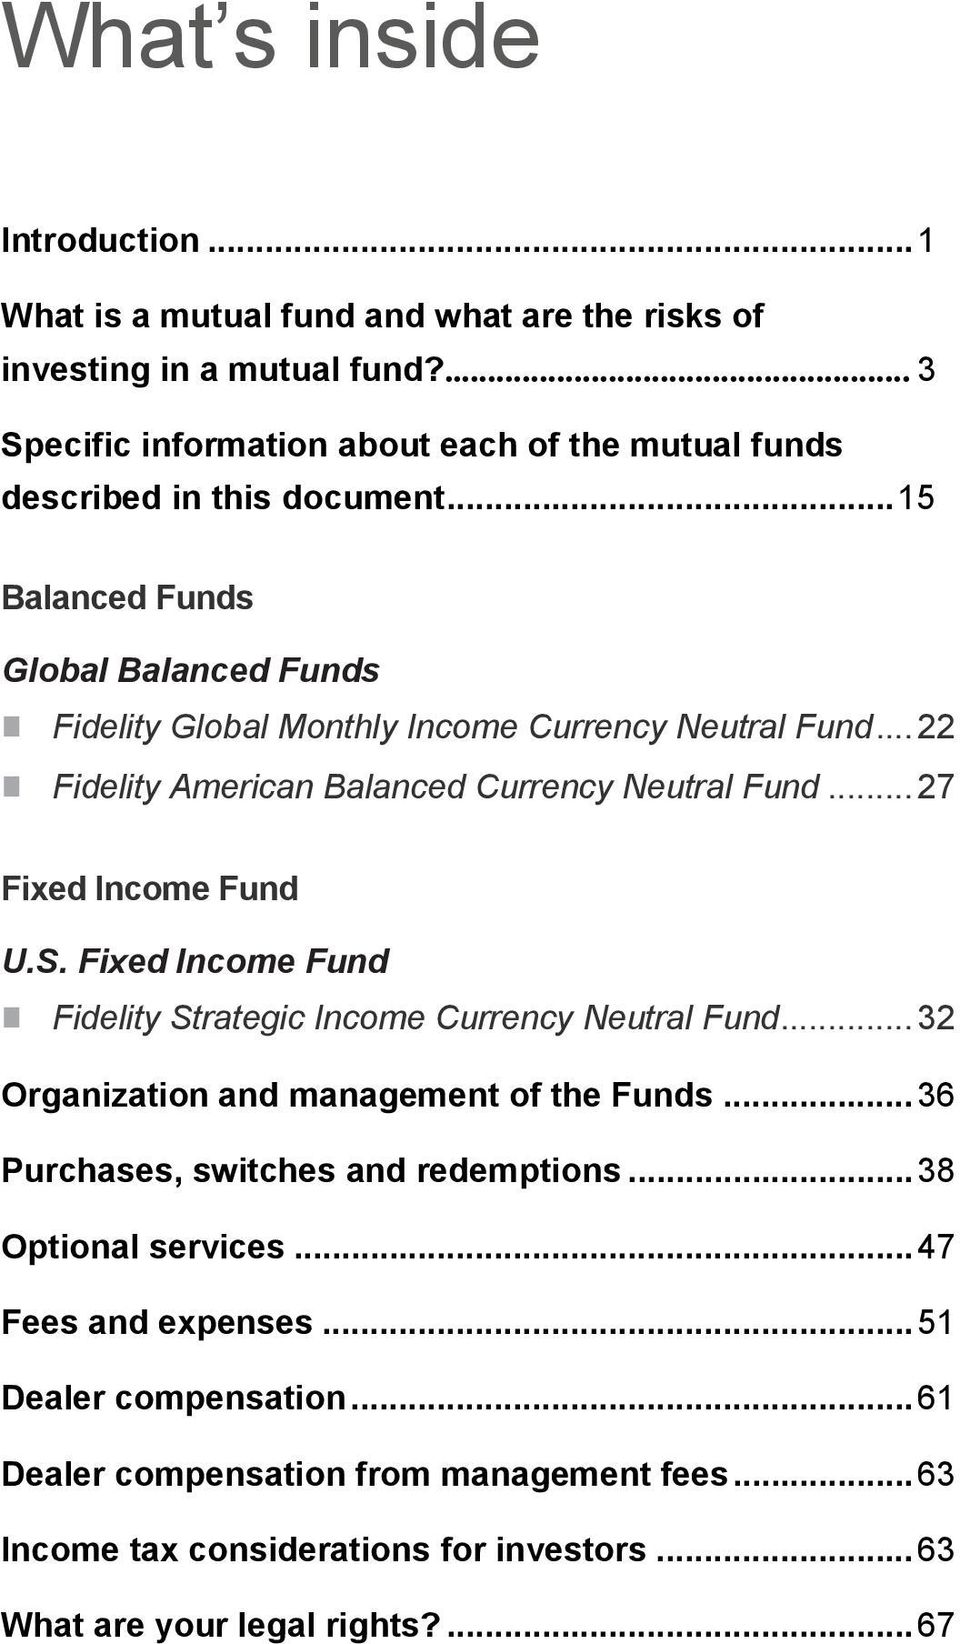 .. 22 Fidelity American Balanced Currency Neutral Fund... 27 Fixed Income Fund U.S. Fixed Income Fund Fidelity Strategic Income Currency Neutral Fund.